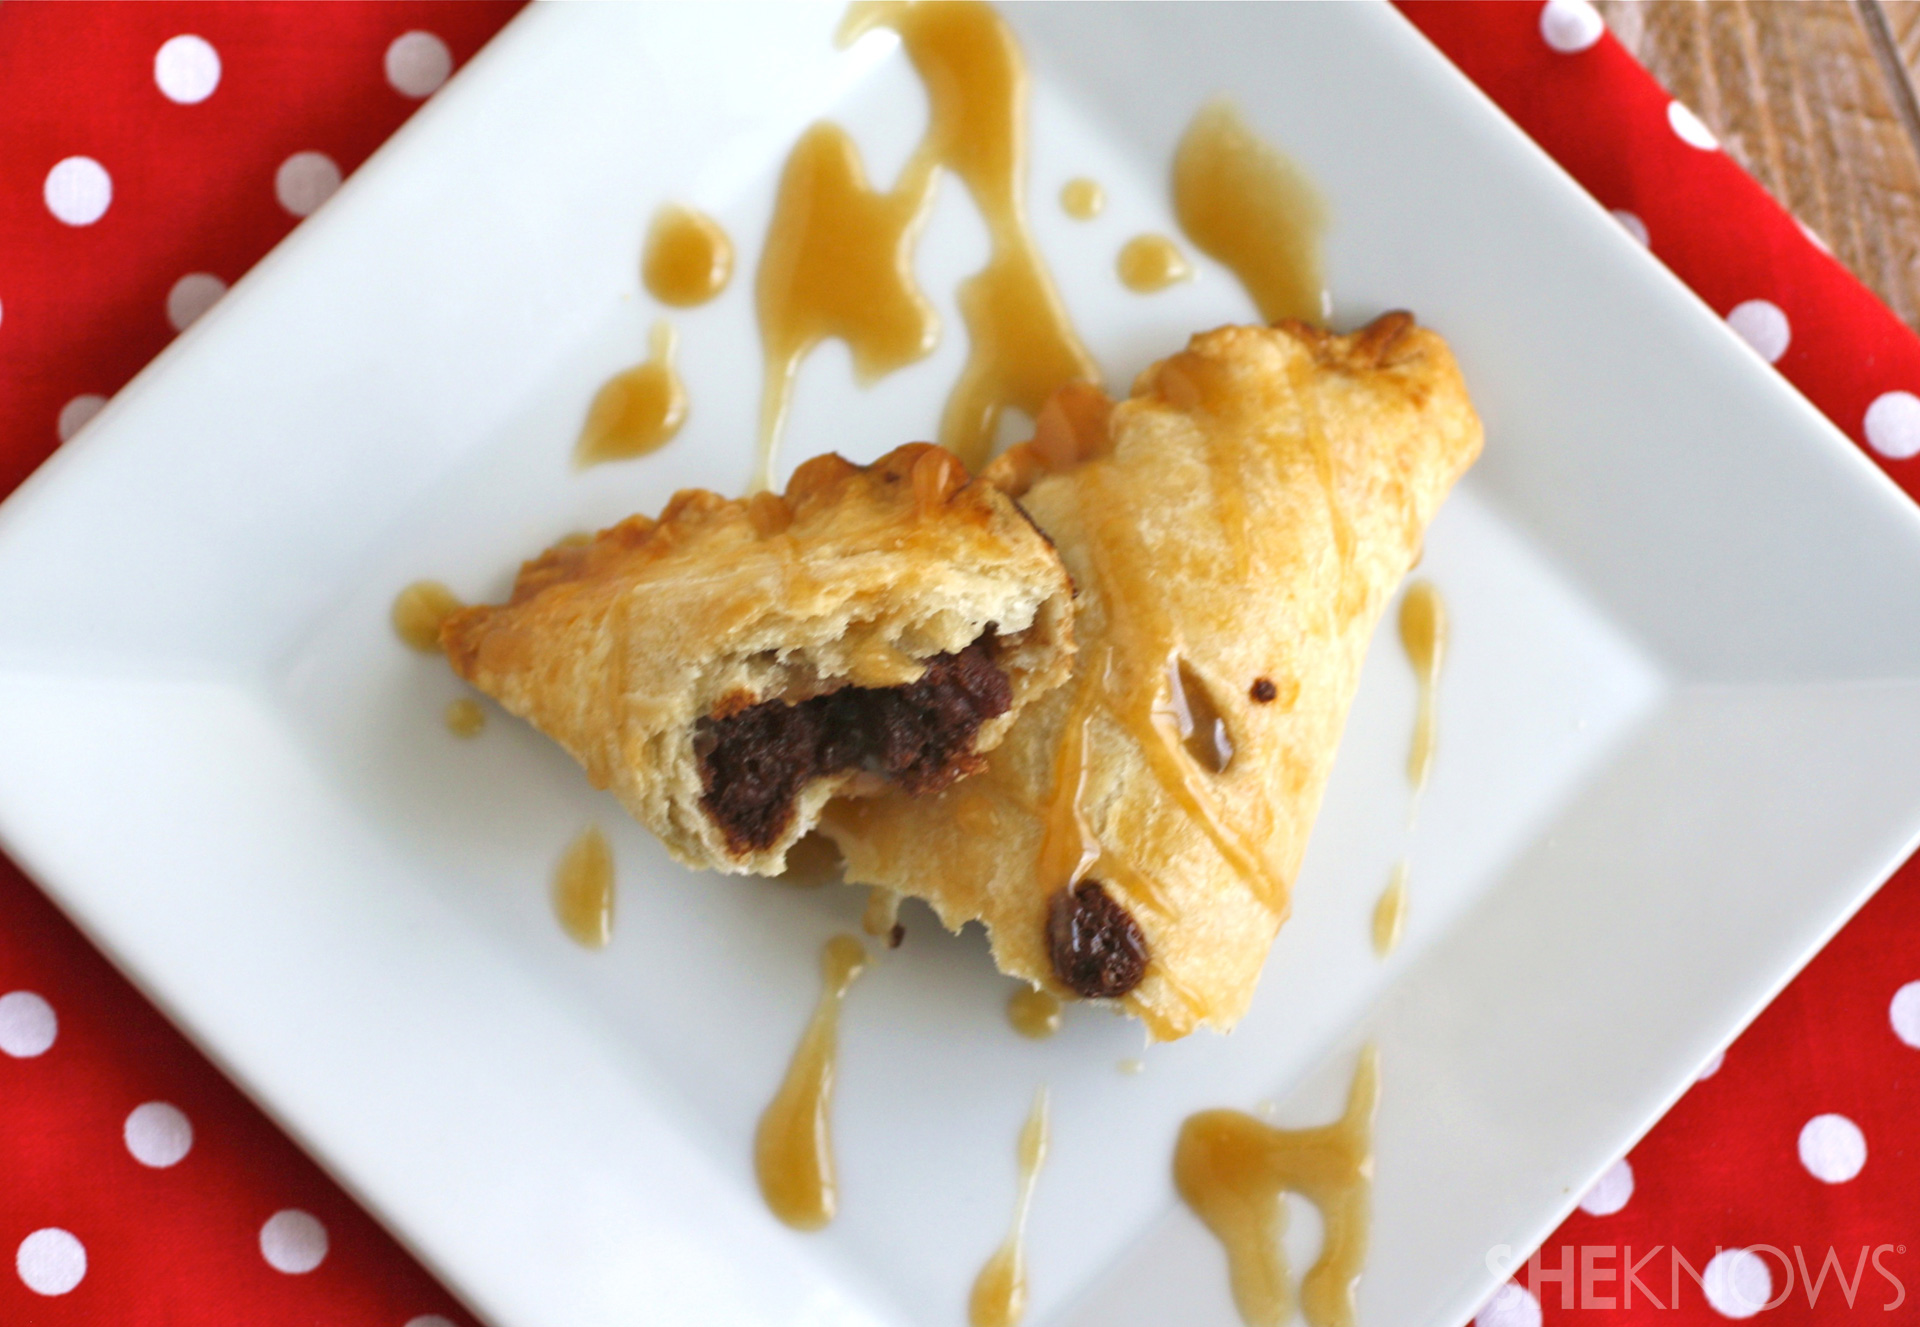 Chocolate-pecan hand pies with caramel drizzle